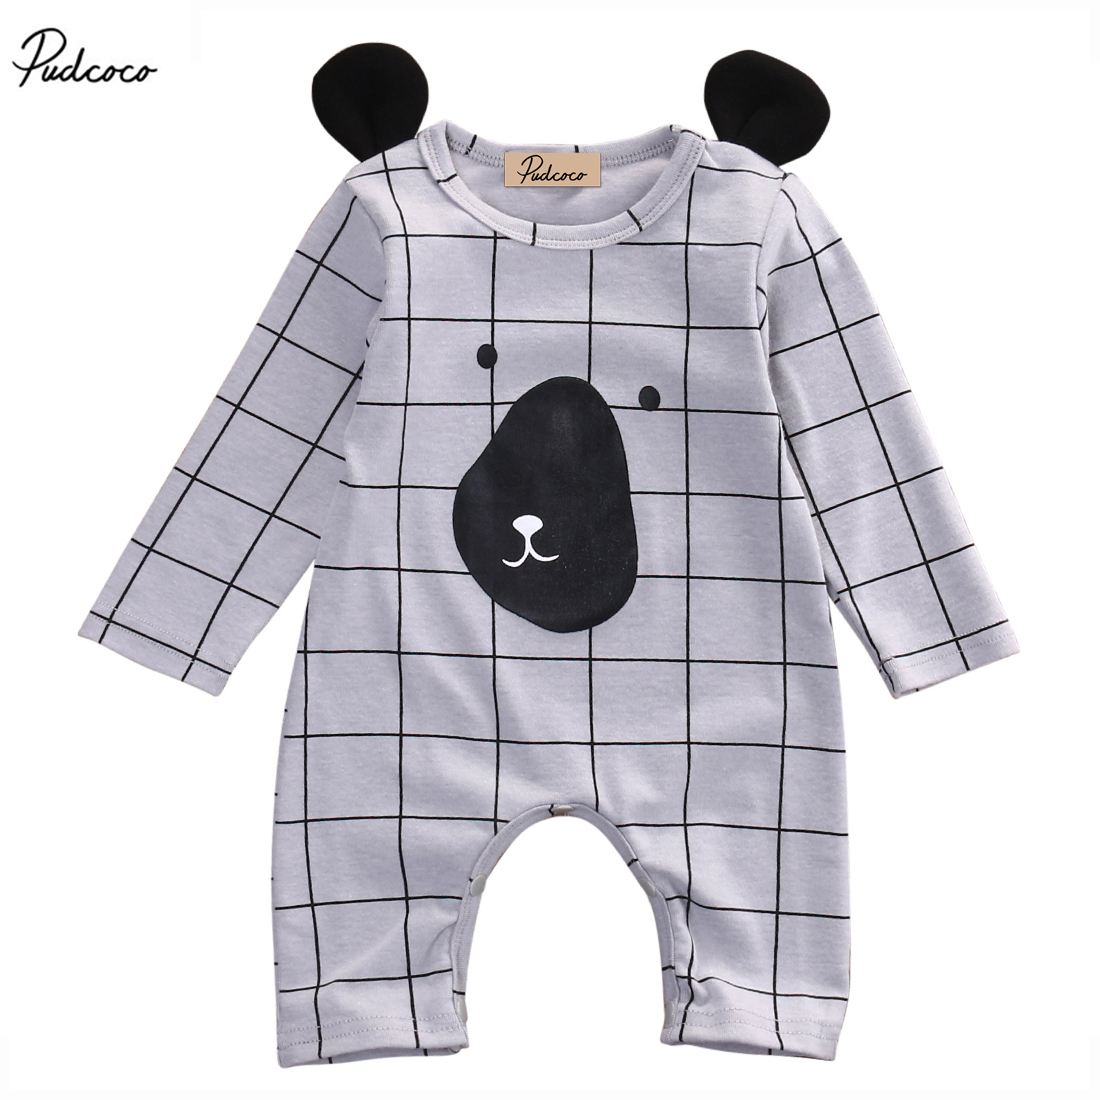 New 2017 Summer Newborn Baby Infant Boy Girl Cute 3D Bear Ear Face Romper Plaid Long Sleeve Jumpsuit Outfit 0-24M newborn infant baby girl clothes strap lace floral romper jumpsuit outfit summer cotton backless one pieces outfit baby onesie